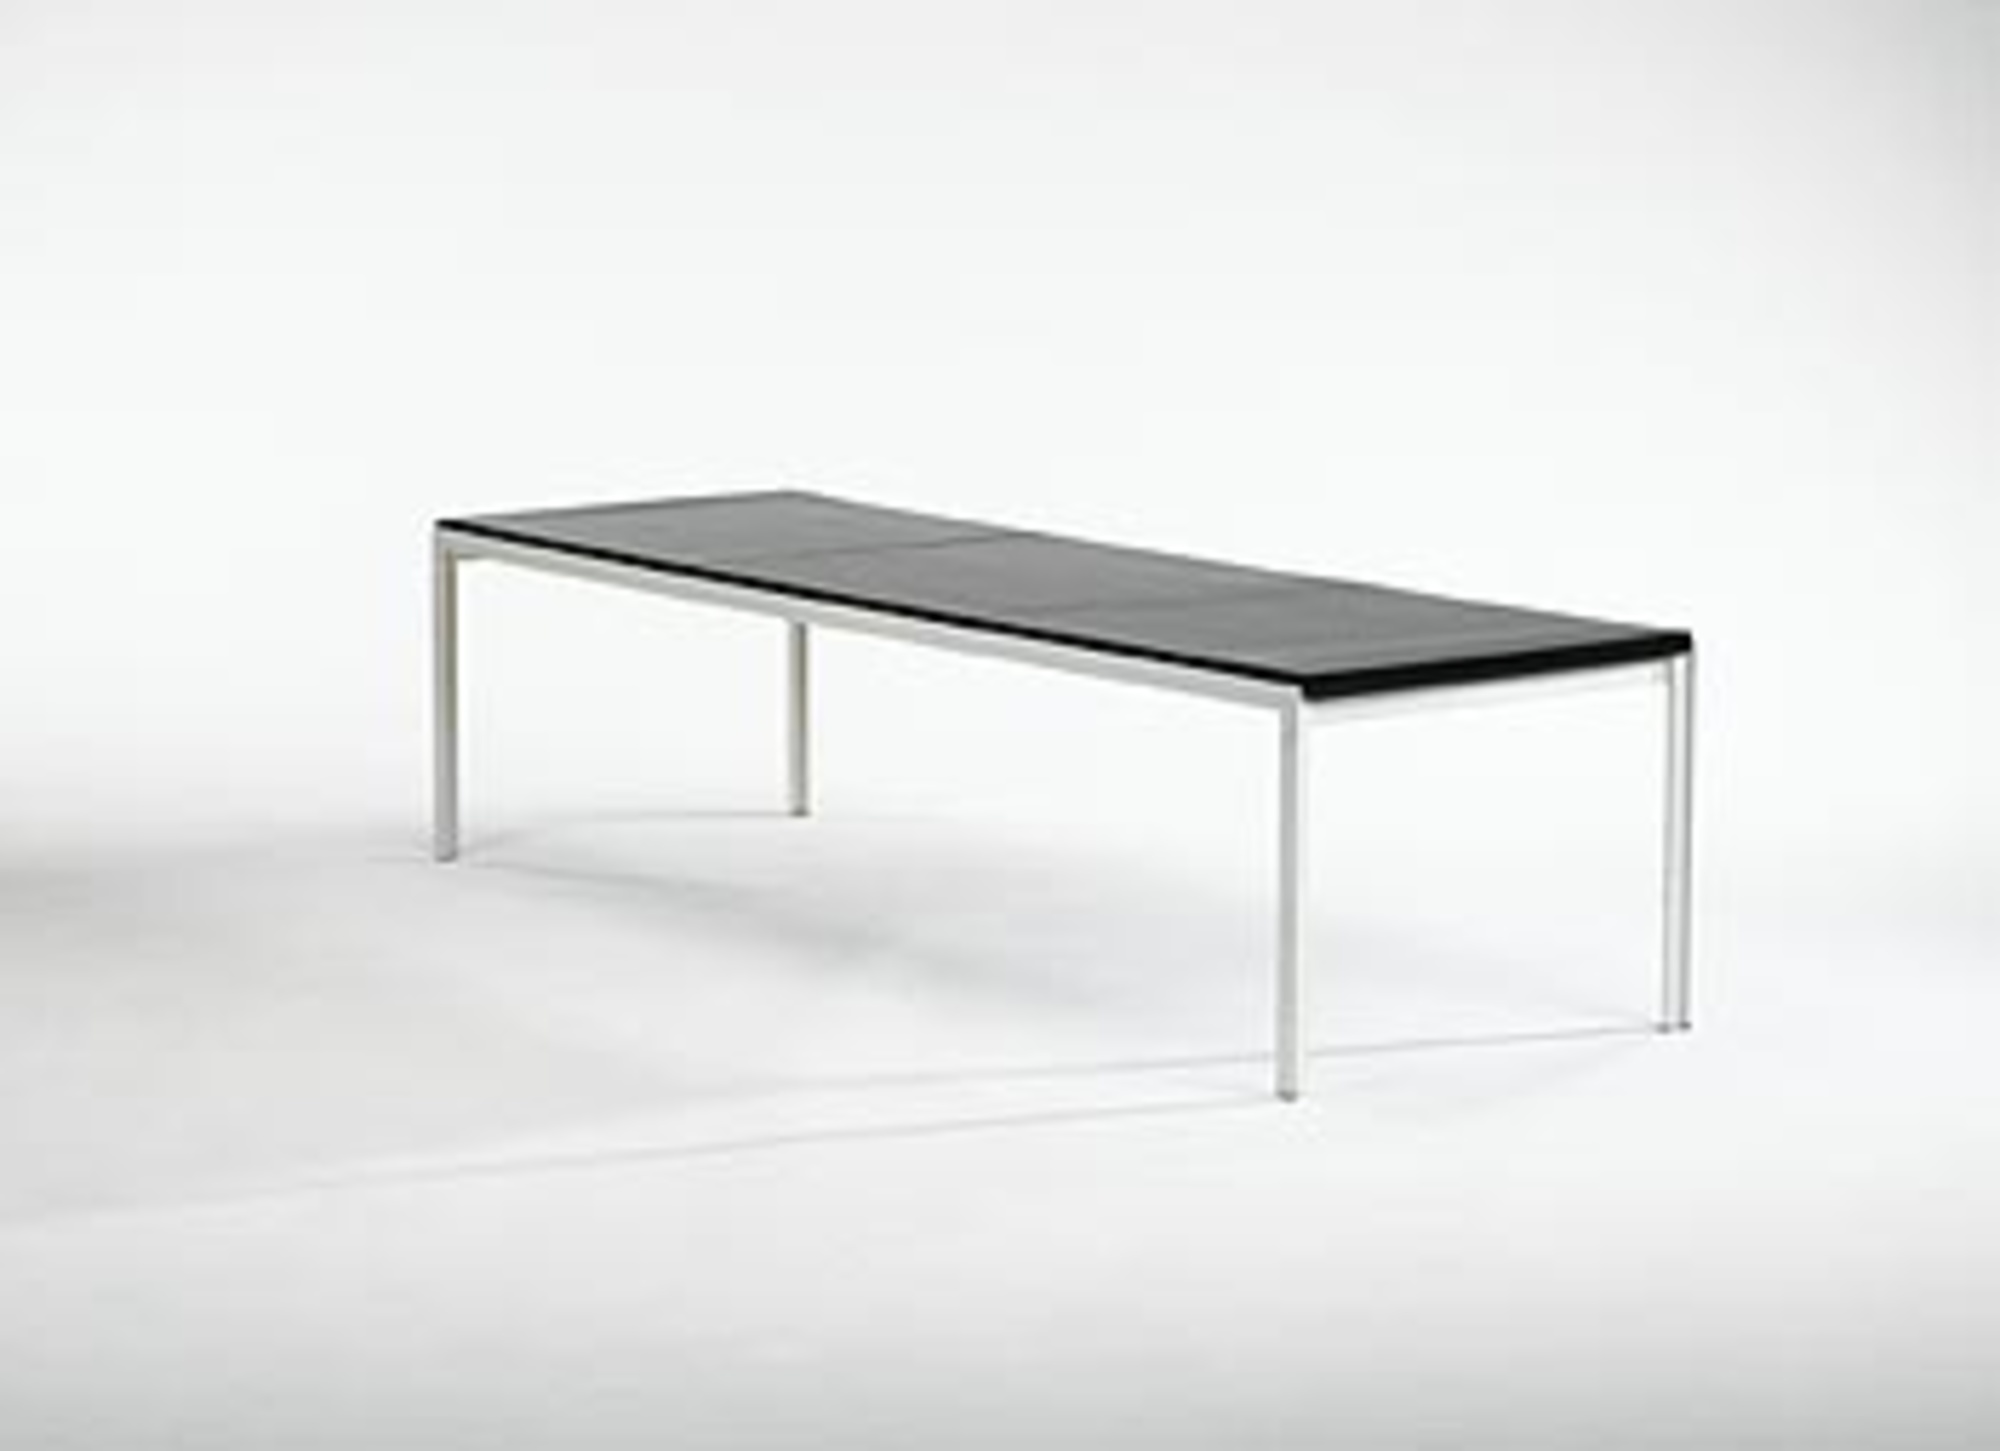 416: FLORENCE KNOLL, Coffee Table U003c Modern Design, 16 March 2003 U003c Auctions  | Wright: Auctions Of Art And Design